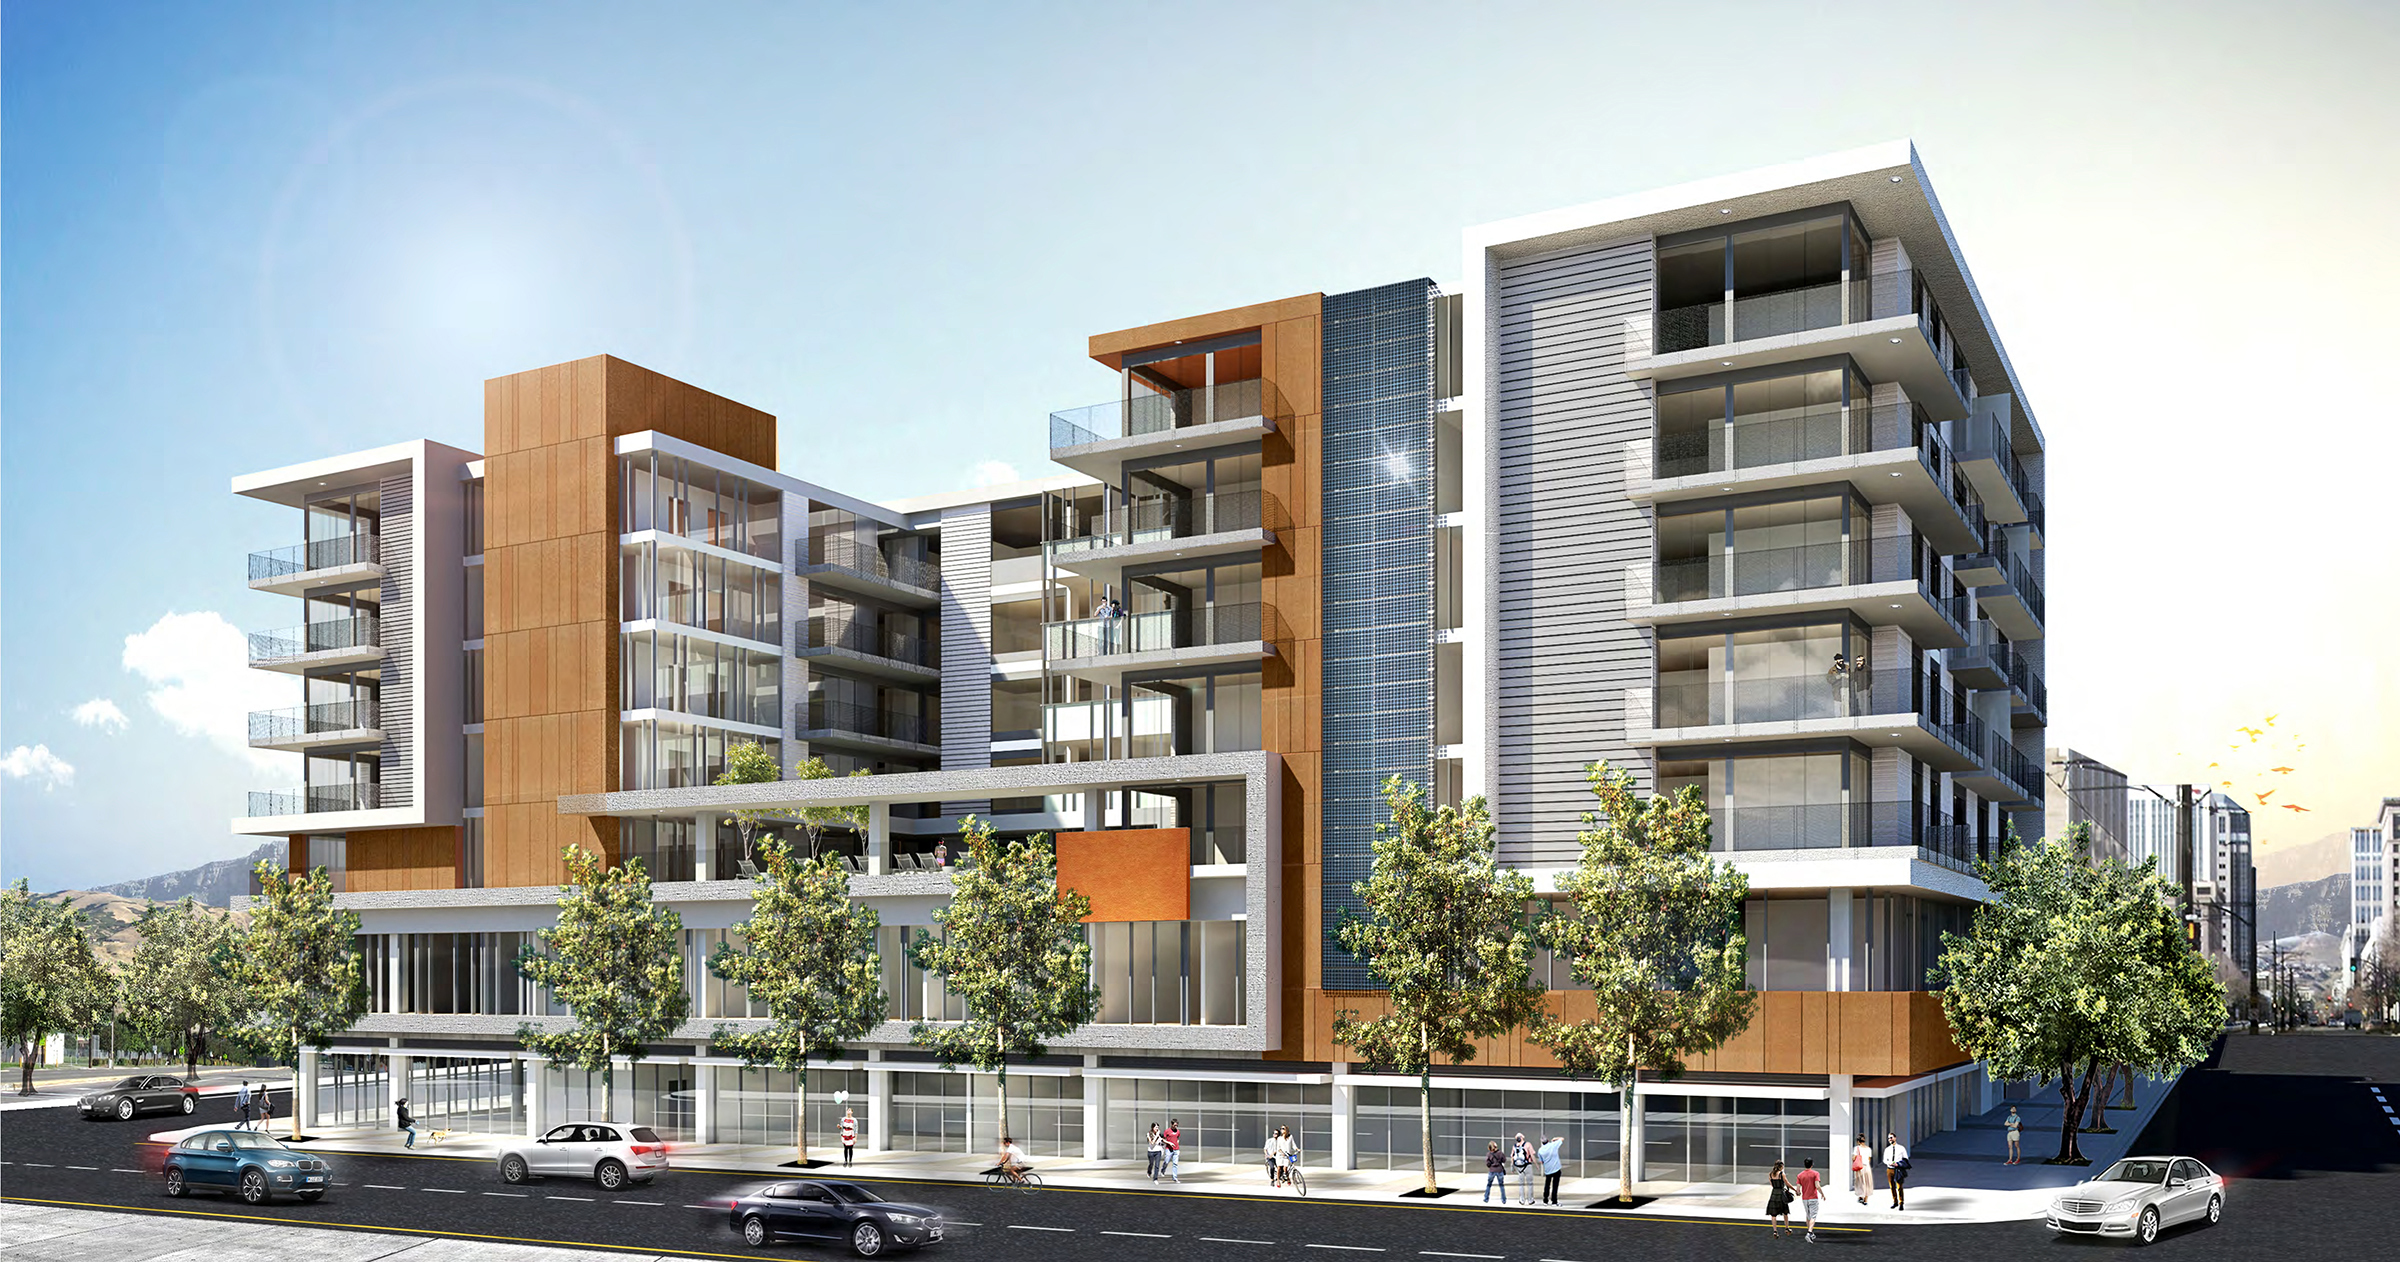 Construction starts on 45m mixed use project in east village san diego business journal - Apartment buildings san diego ...